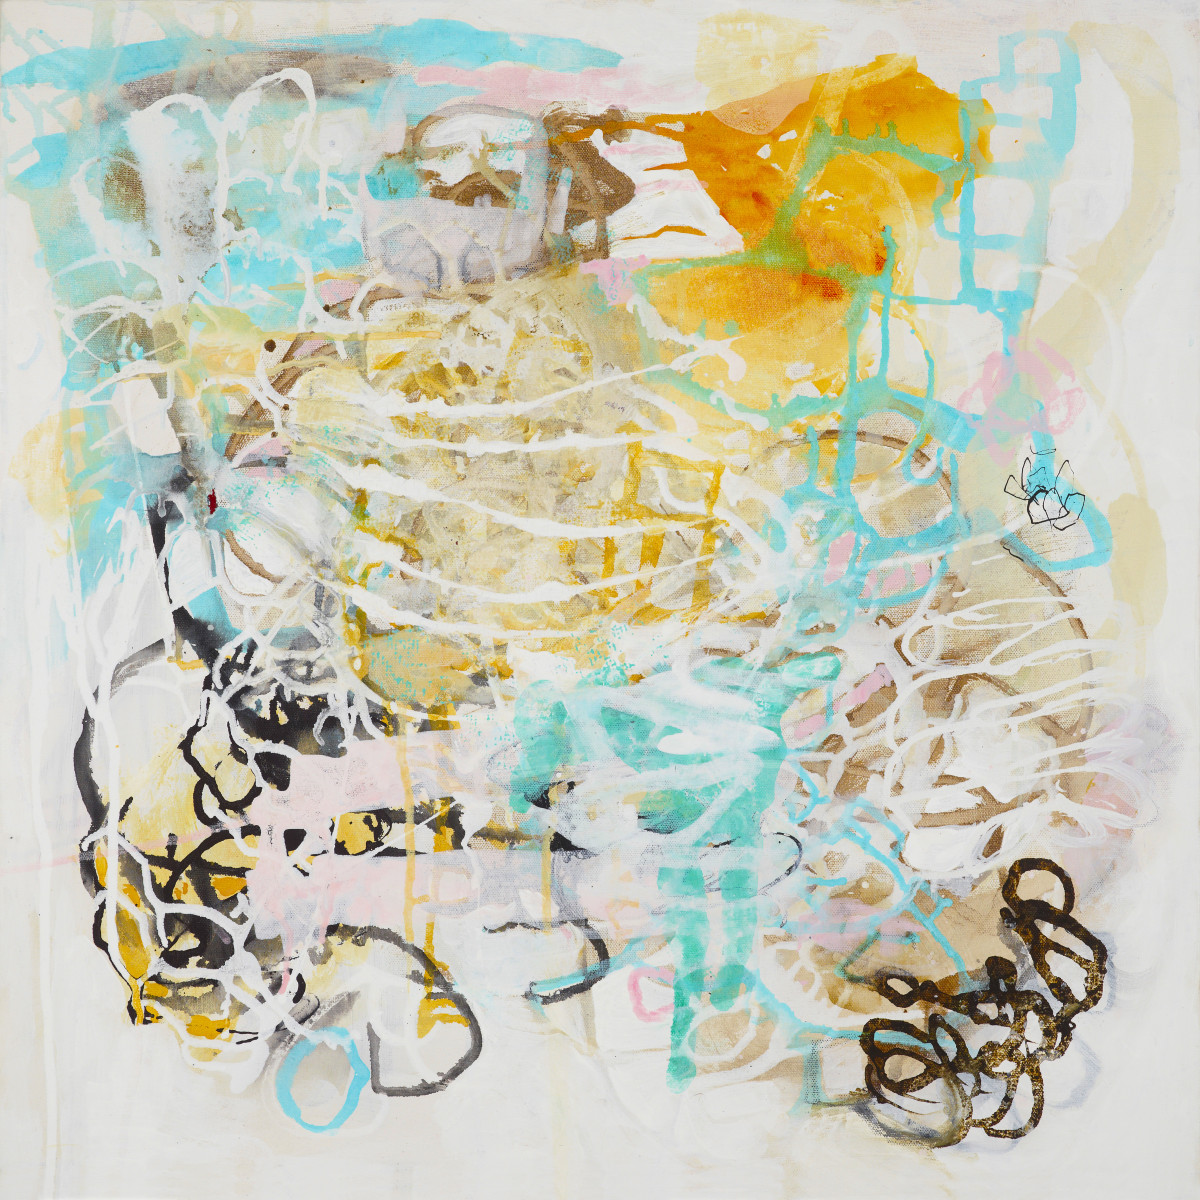 Tangled Mapping.1 by Barbara Fisher